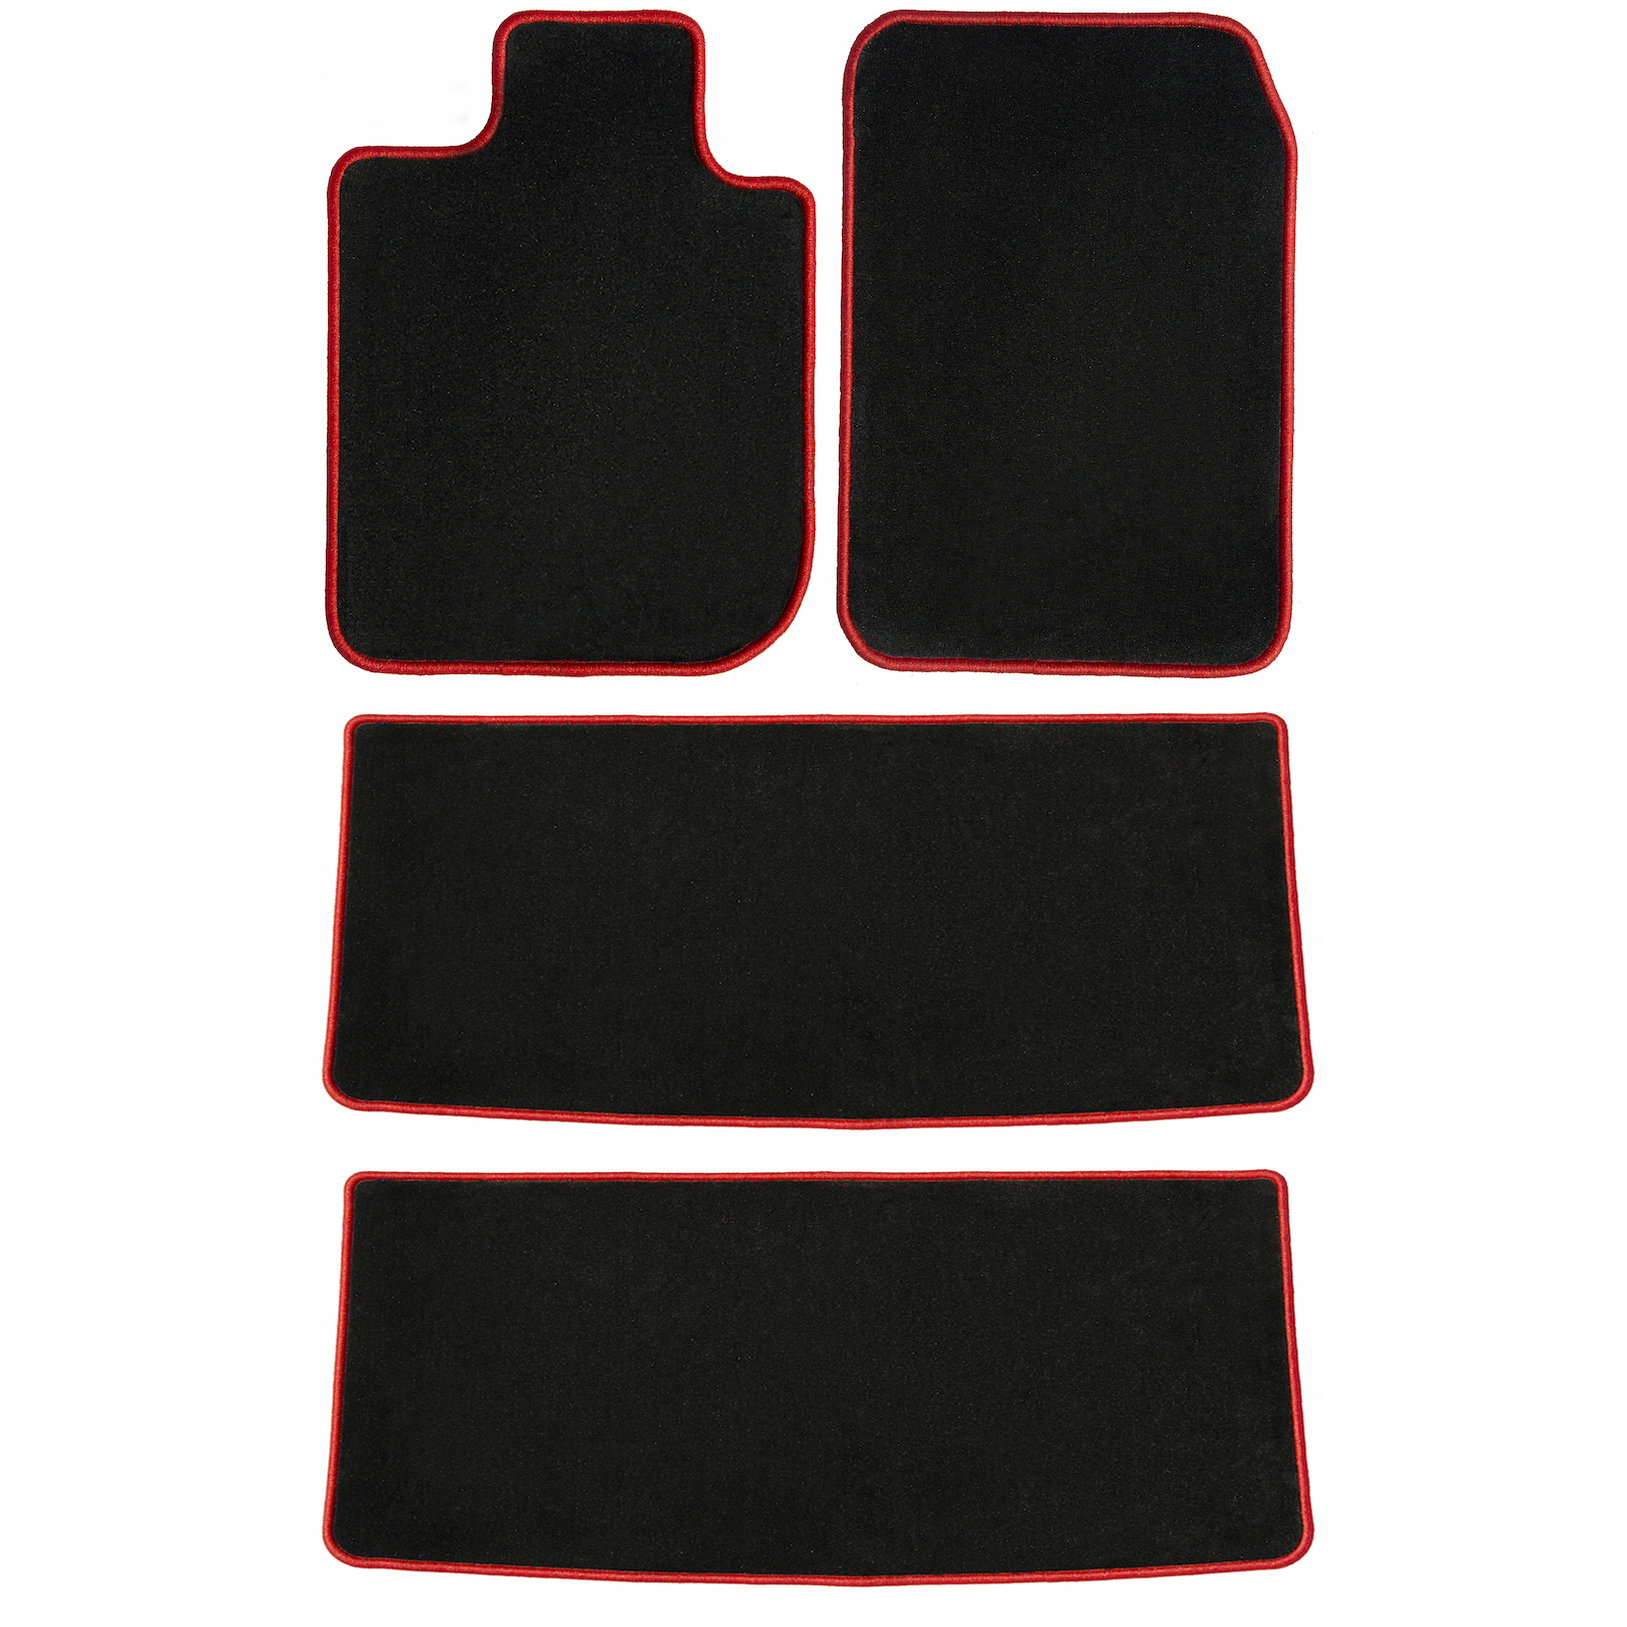 2015 2019 Toyota Highlander Black with Red Edging Driver 4 Piece Floor Passenger 2016 2017 GGBAILEY D50950-LSA-BLK/_BR Custom Fit Car Mats for 2014 2018 2nd /& 3rd Row